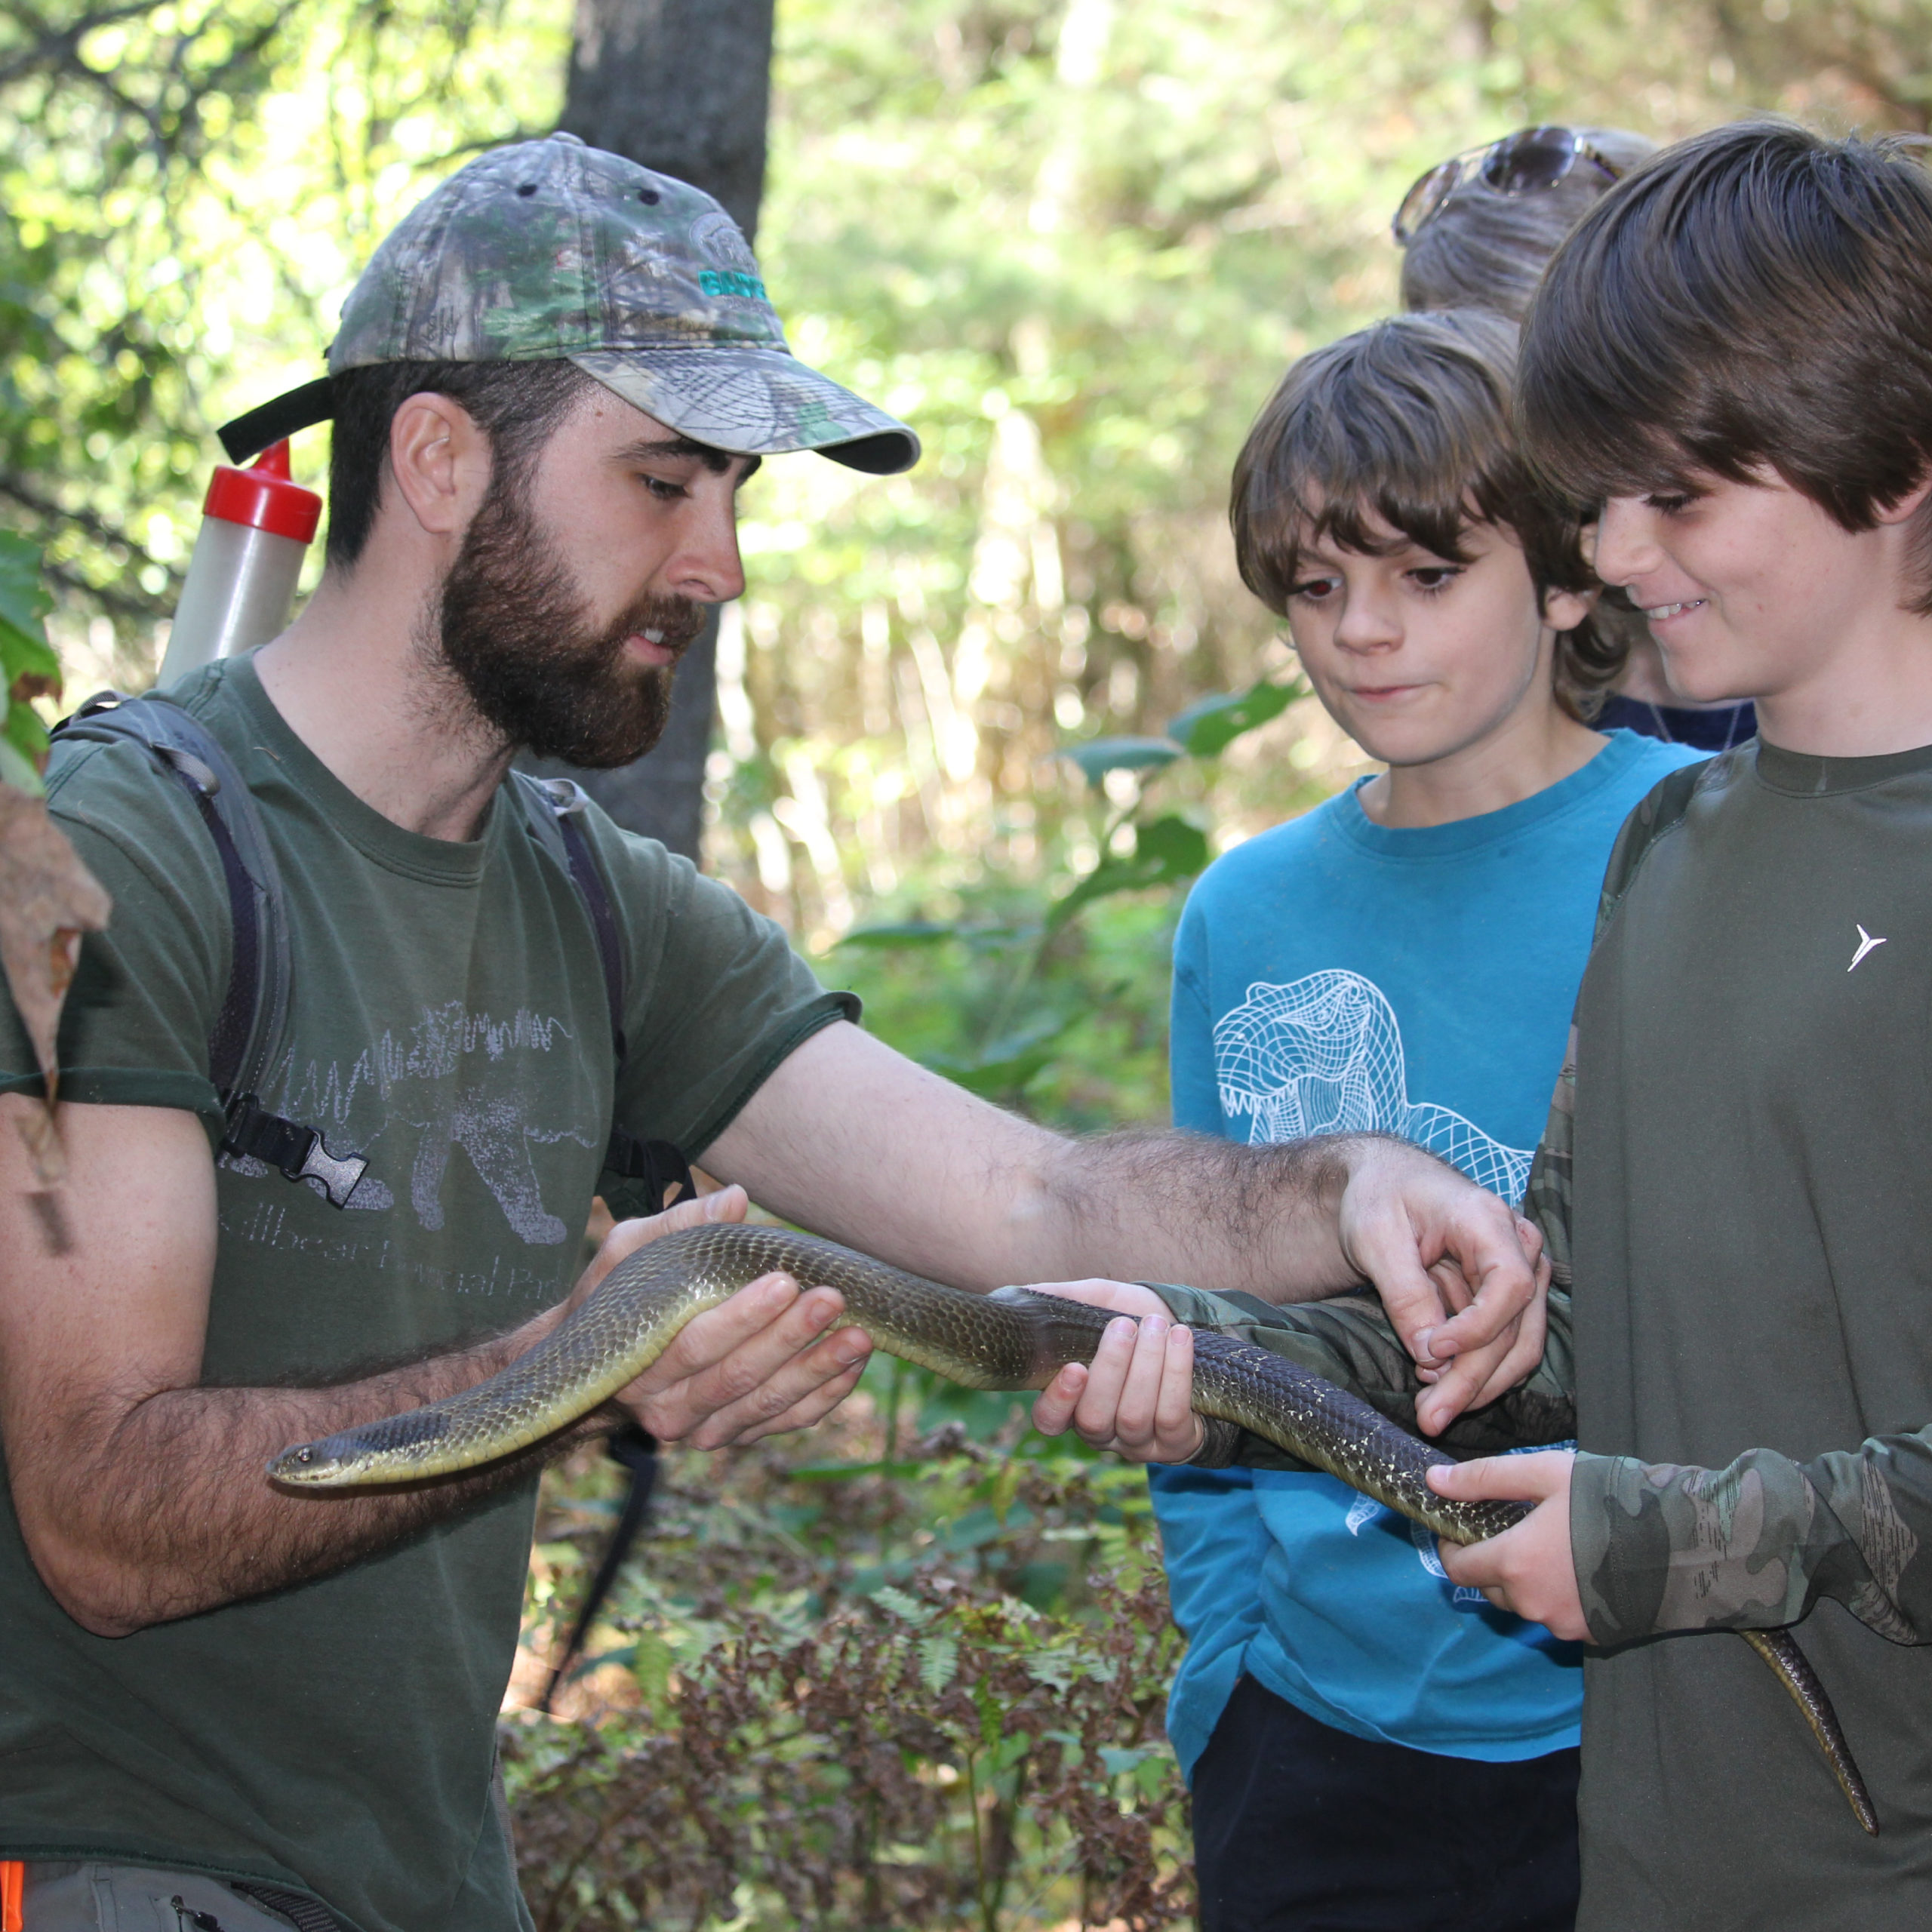 Rattlesnake lead biologist Eric Jolin with an eastern hog-nosed snake in northern Ontario with some help from the next generation of young conservationists.